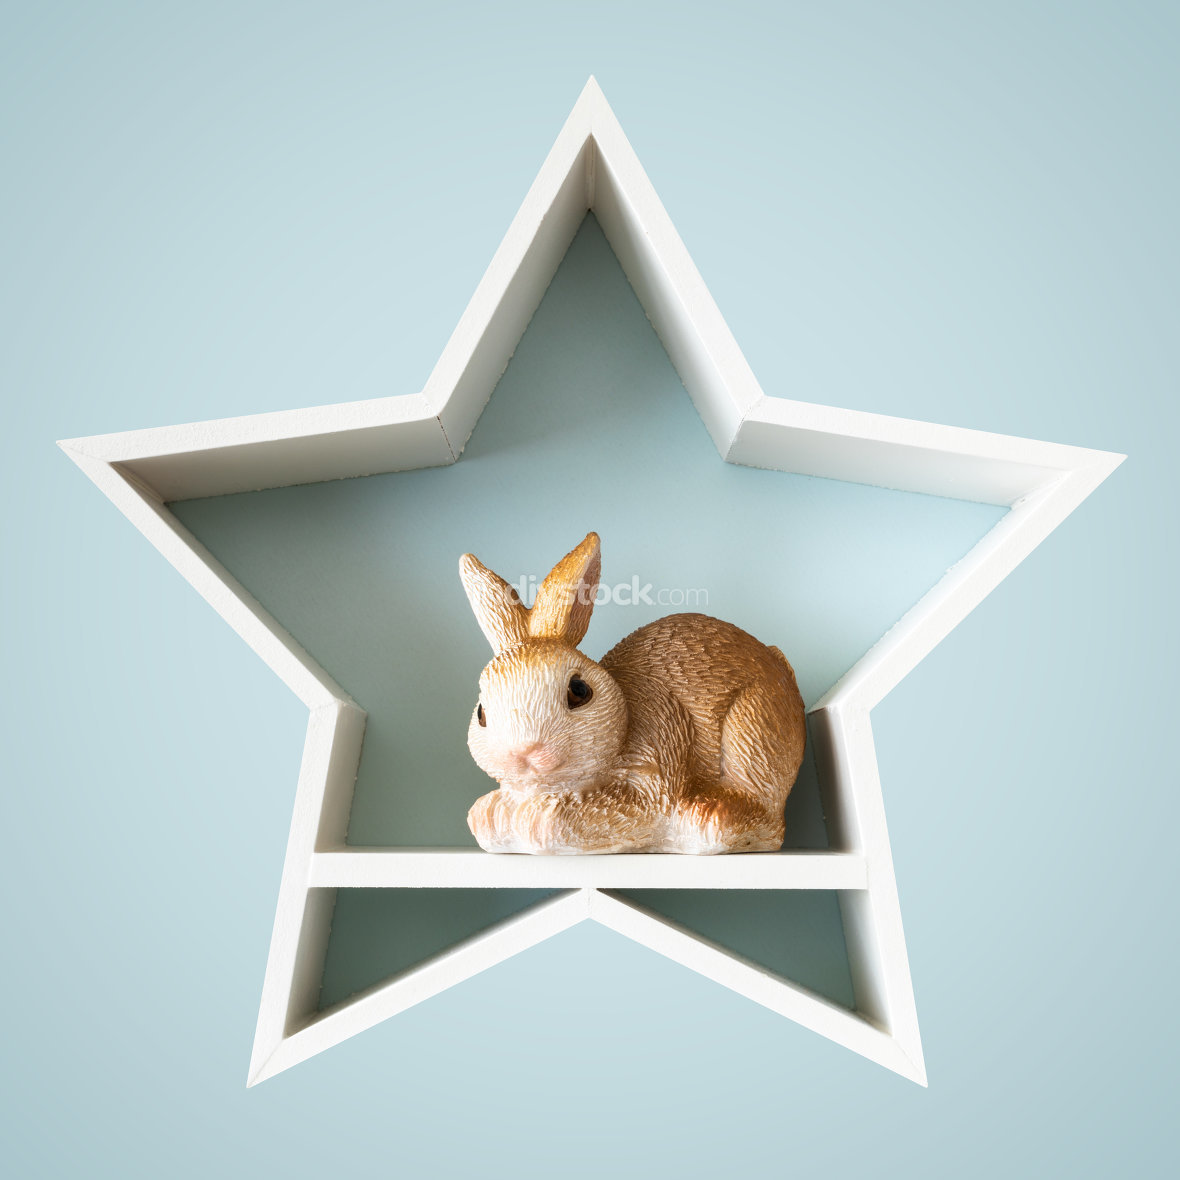 Easter bunny in a white star